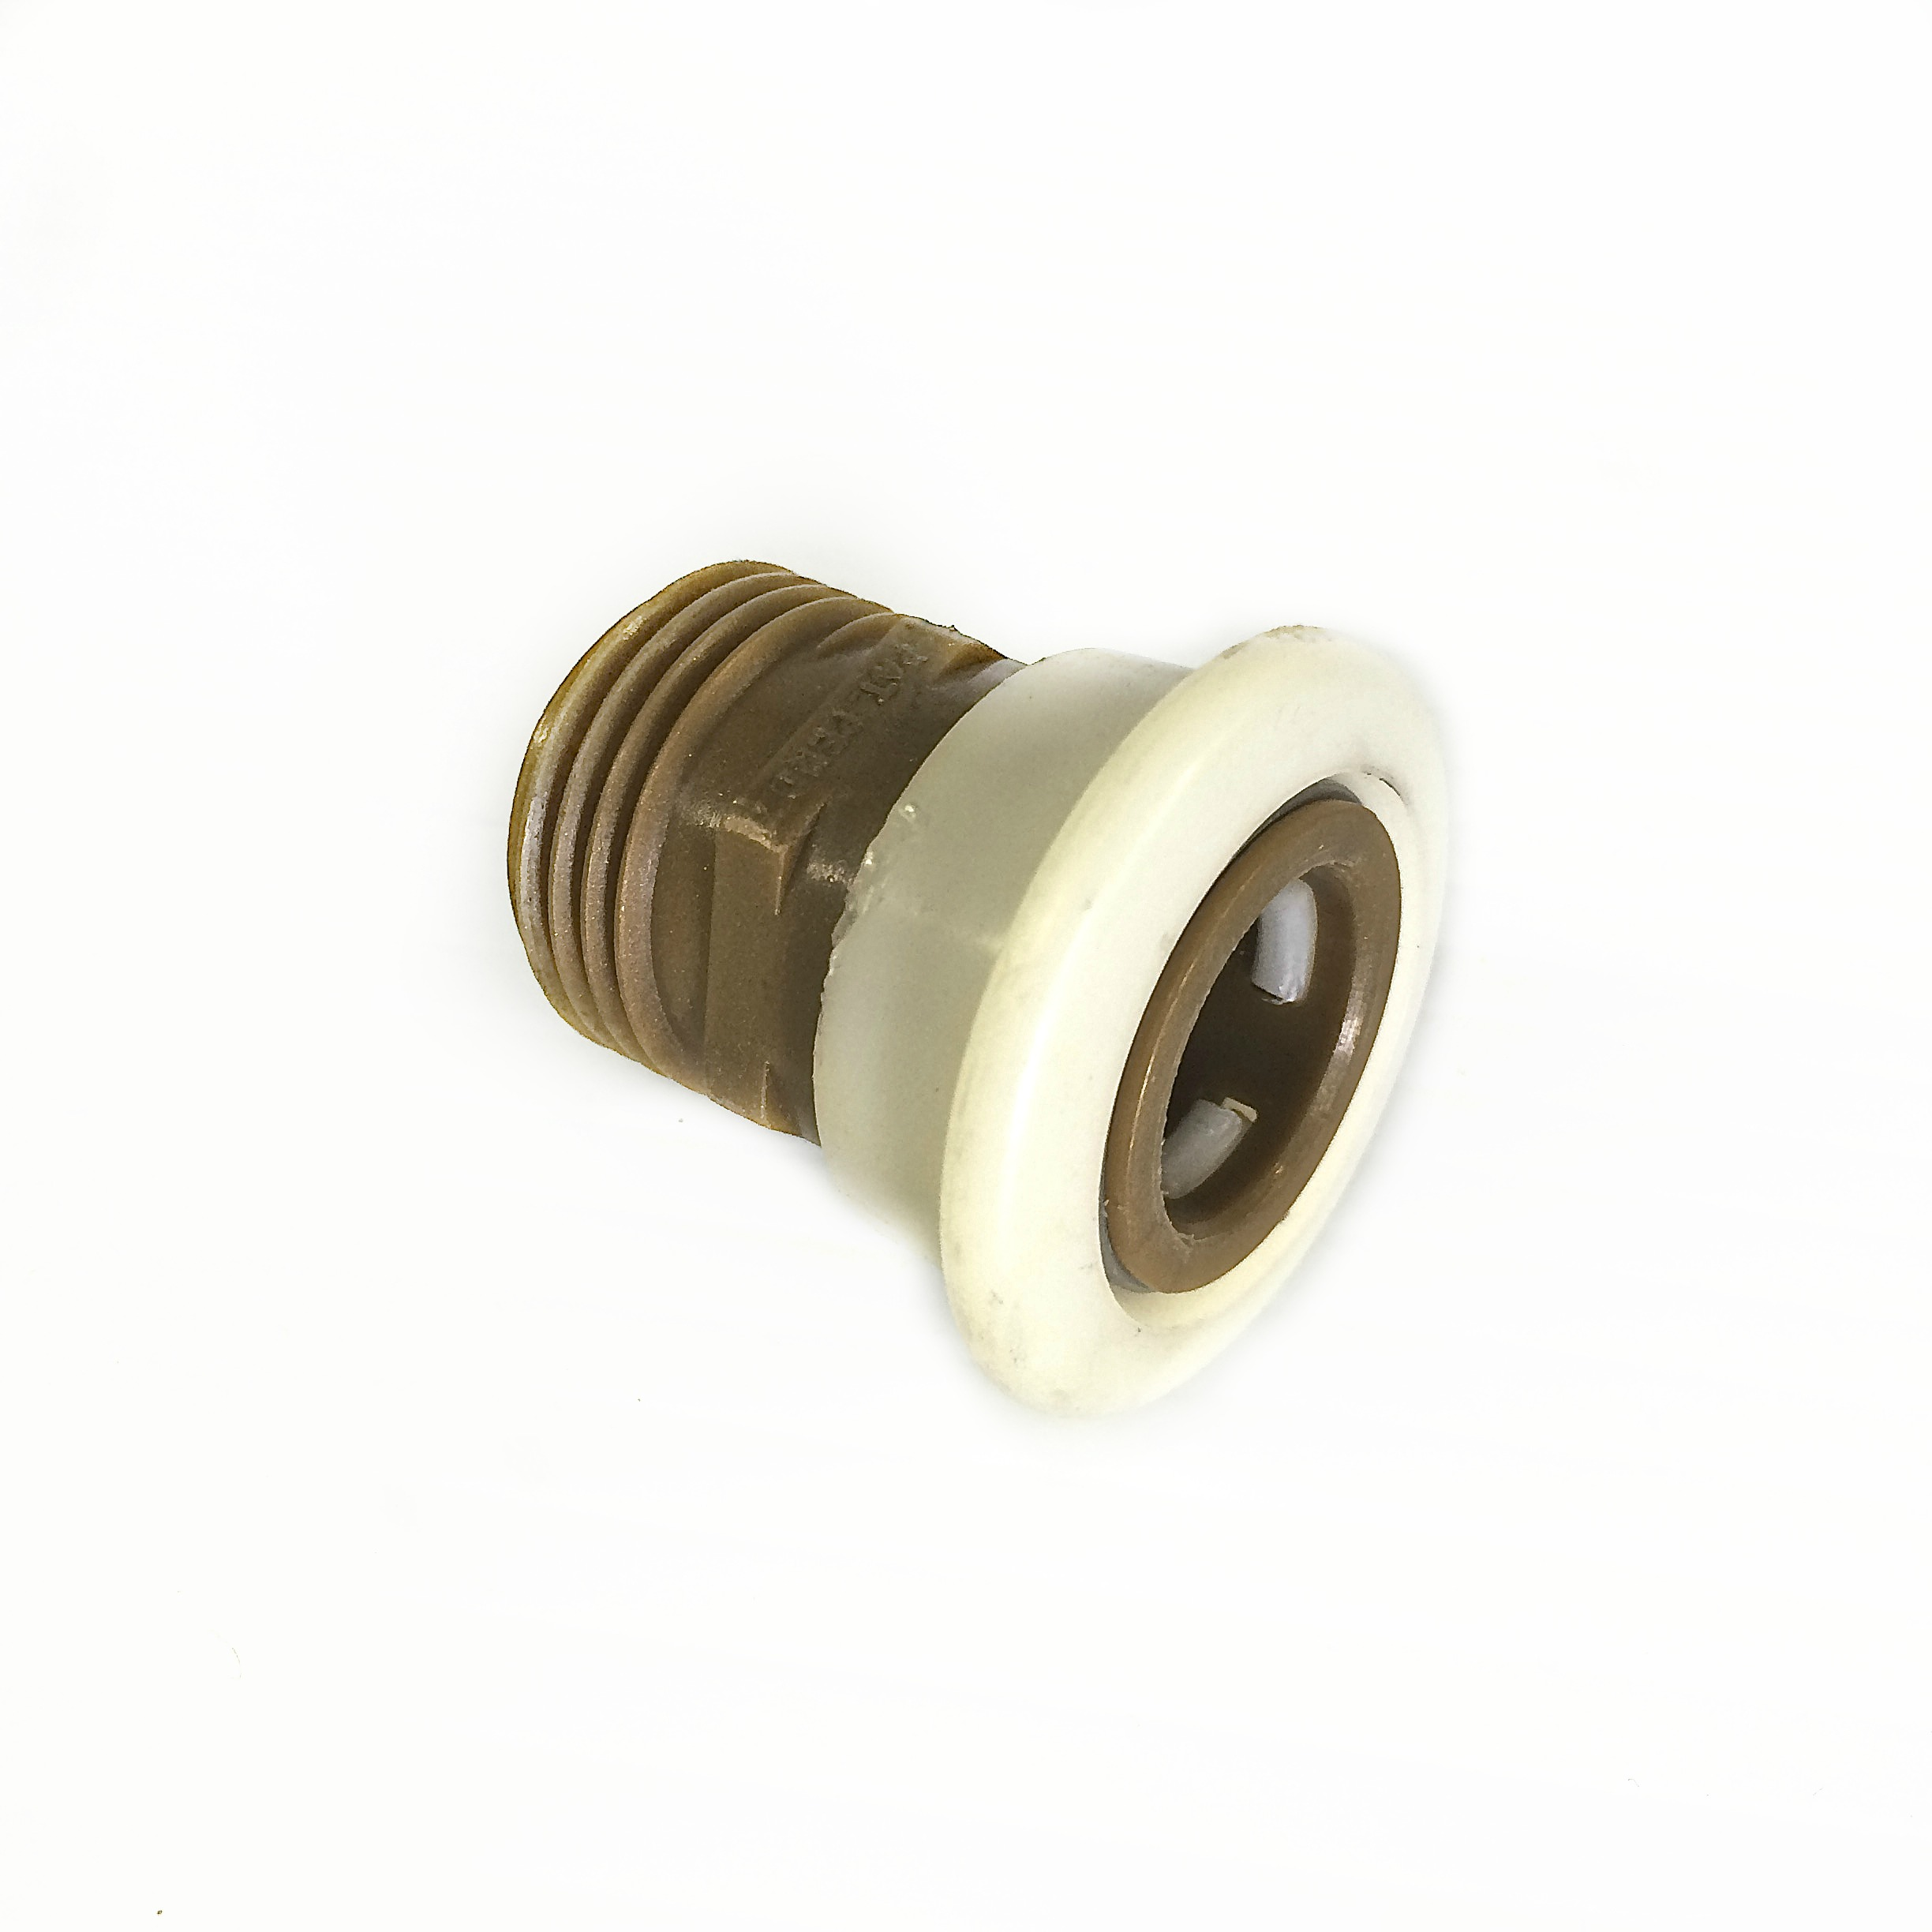 65033 raccord ma pi ce pi ces d 39 lectrom nagers service for 65033